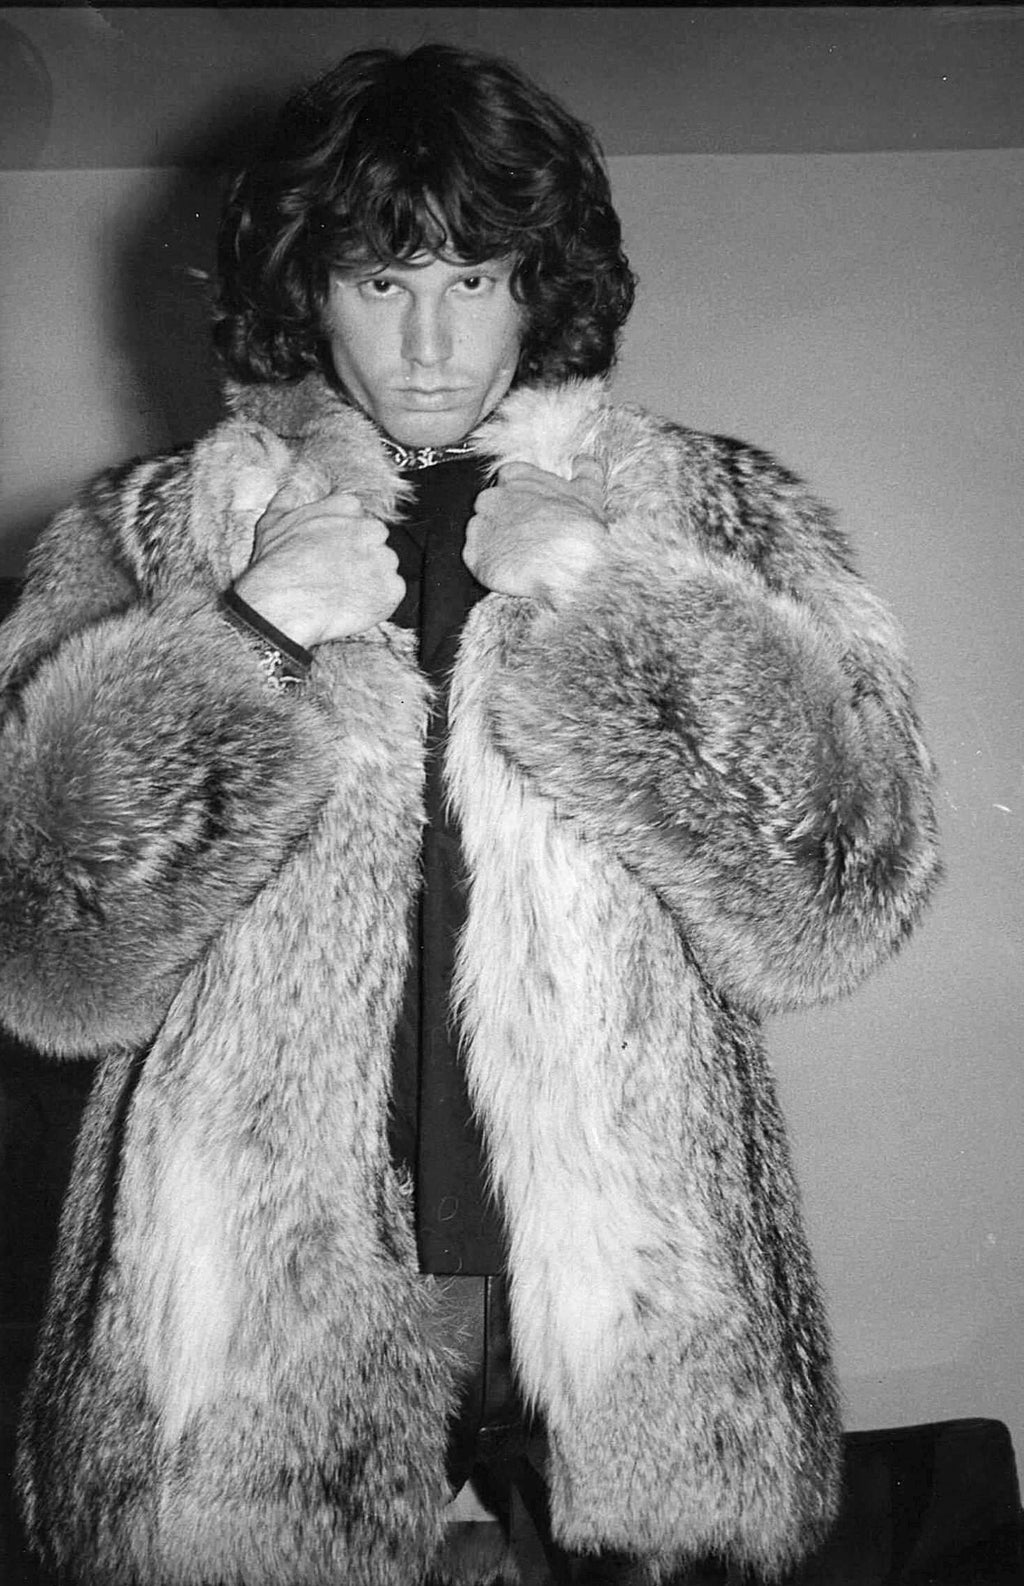 Collection, vintage photographs, Jim Morrison, Gloria Stavers, limited edition, signed, Fine art, photography, home decor, decor, wall decor, La Maison Rebelle, gift shop, Los Angeles.